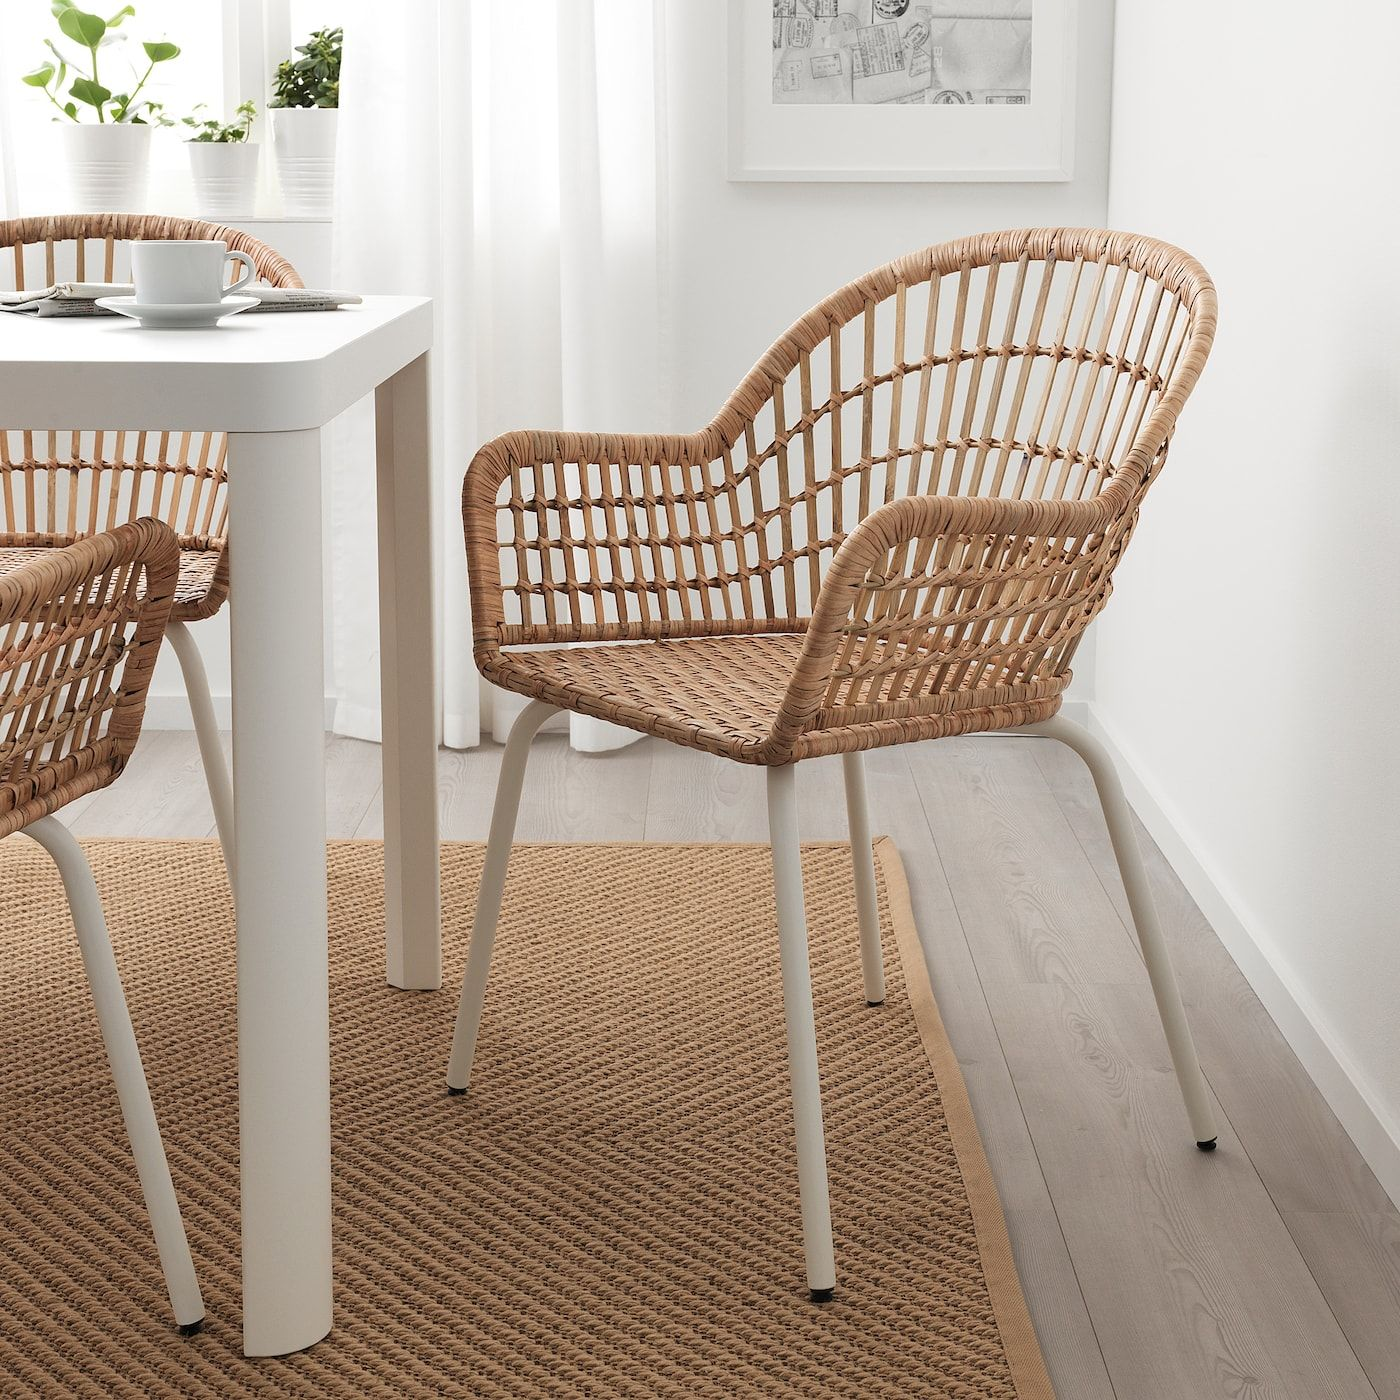 Nilsove Armchair Rattan White Ikea Dining Ikea Dining Chair